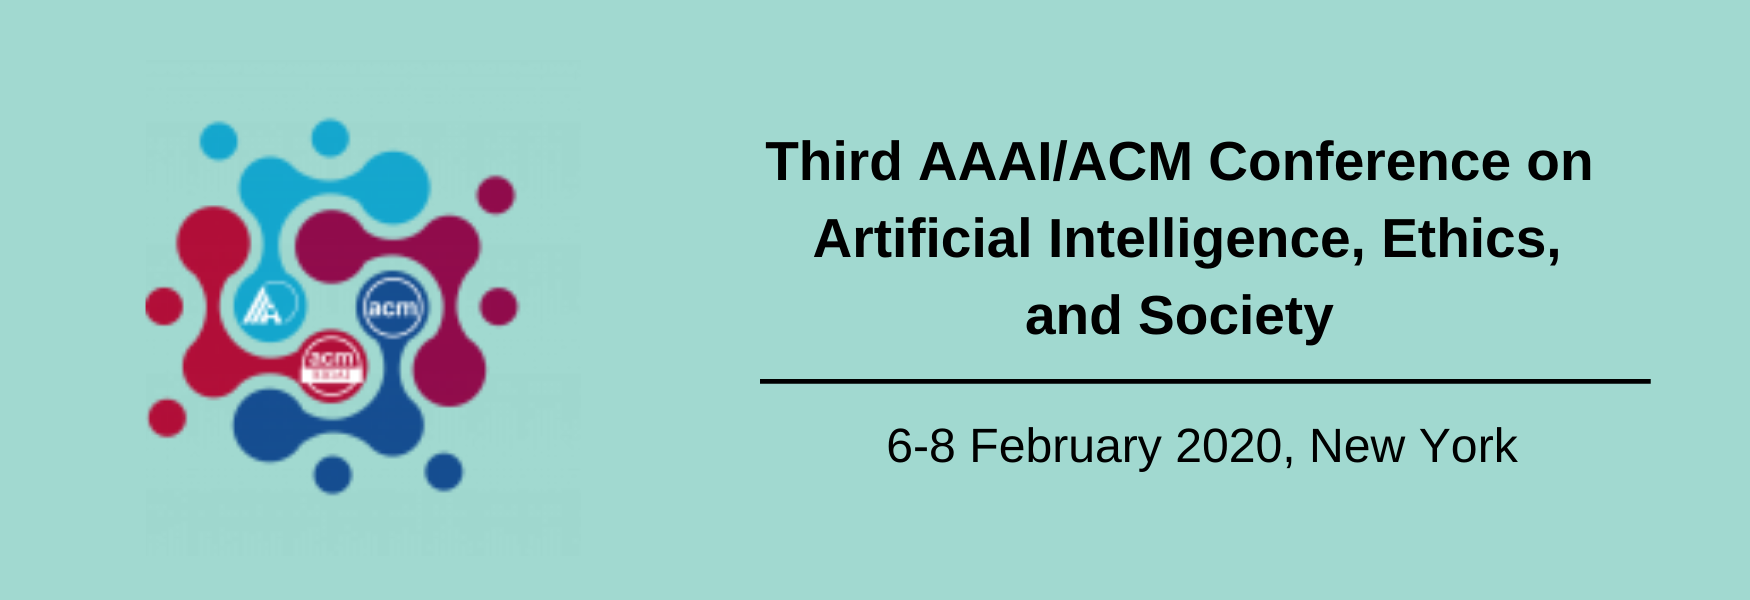 Artificial Intelligence, Ethics and Society Conference 2020